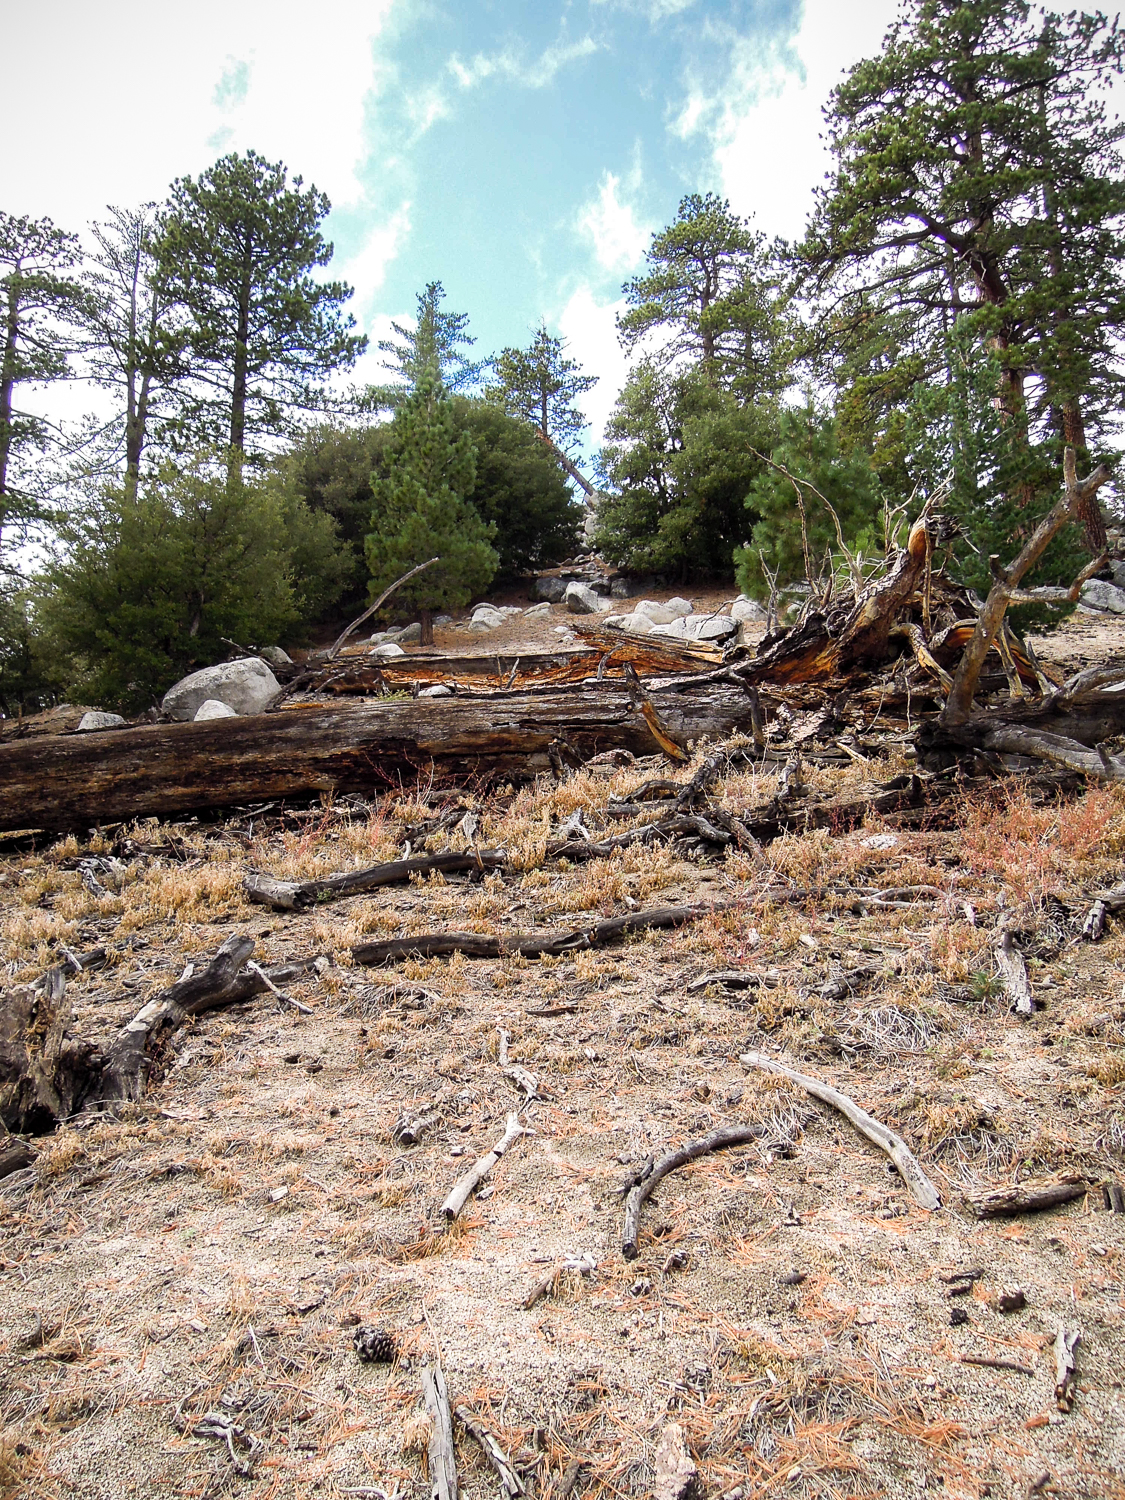 """When you are at the top and have arrived at an open field of pine needles, look up and to your right, this is considered the """"peak"""" and is where the can is hidden"""